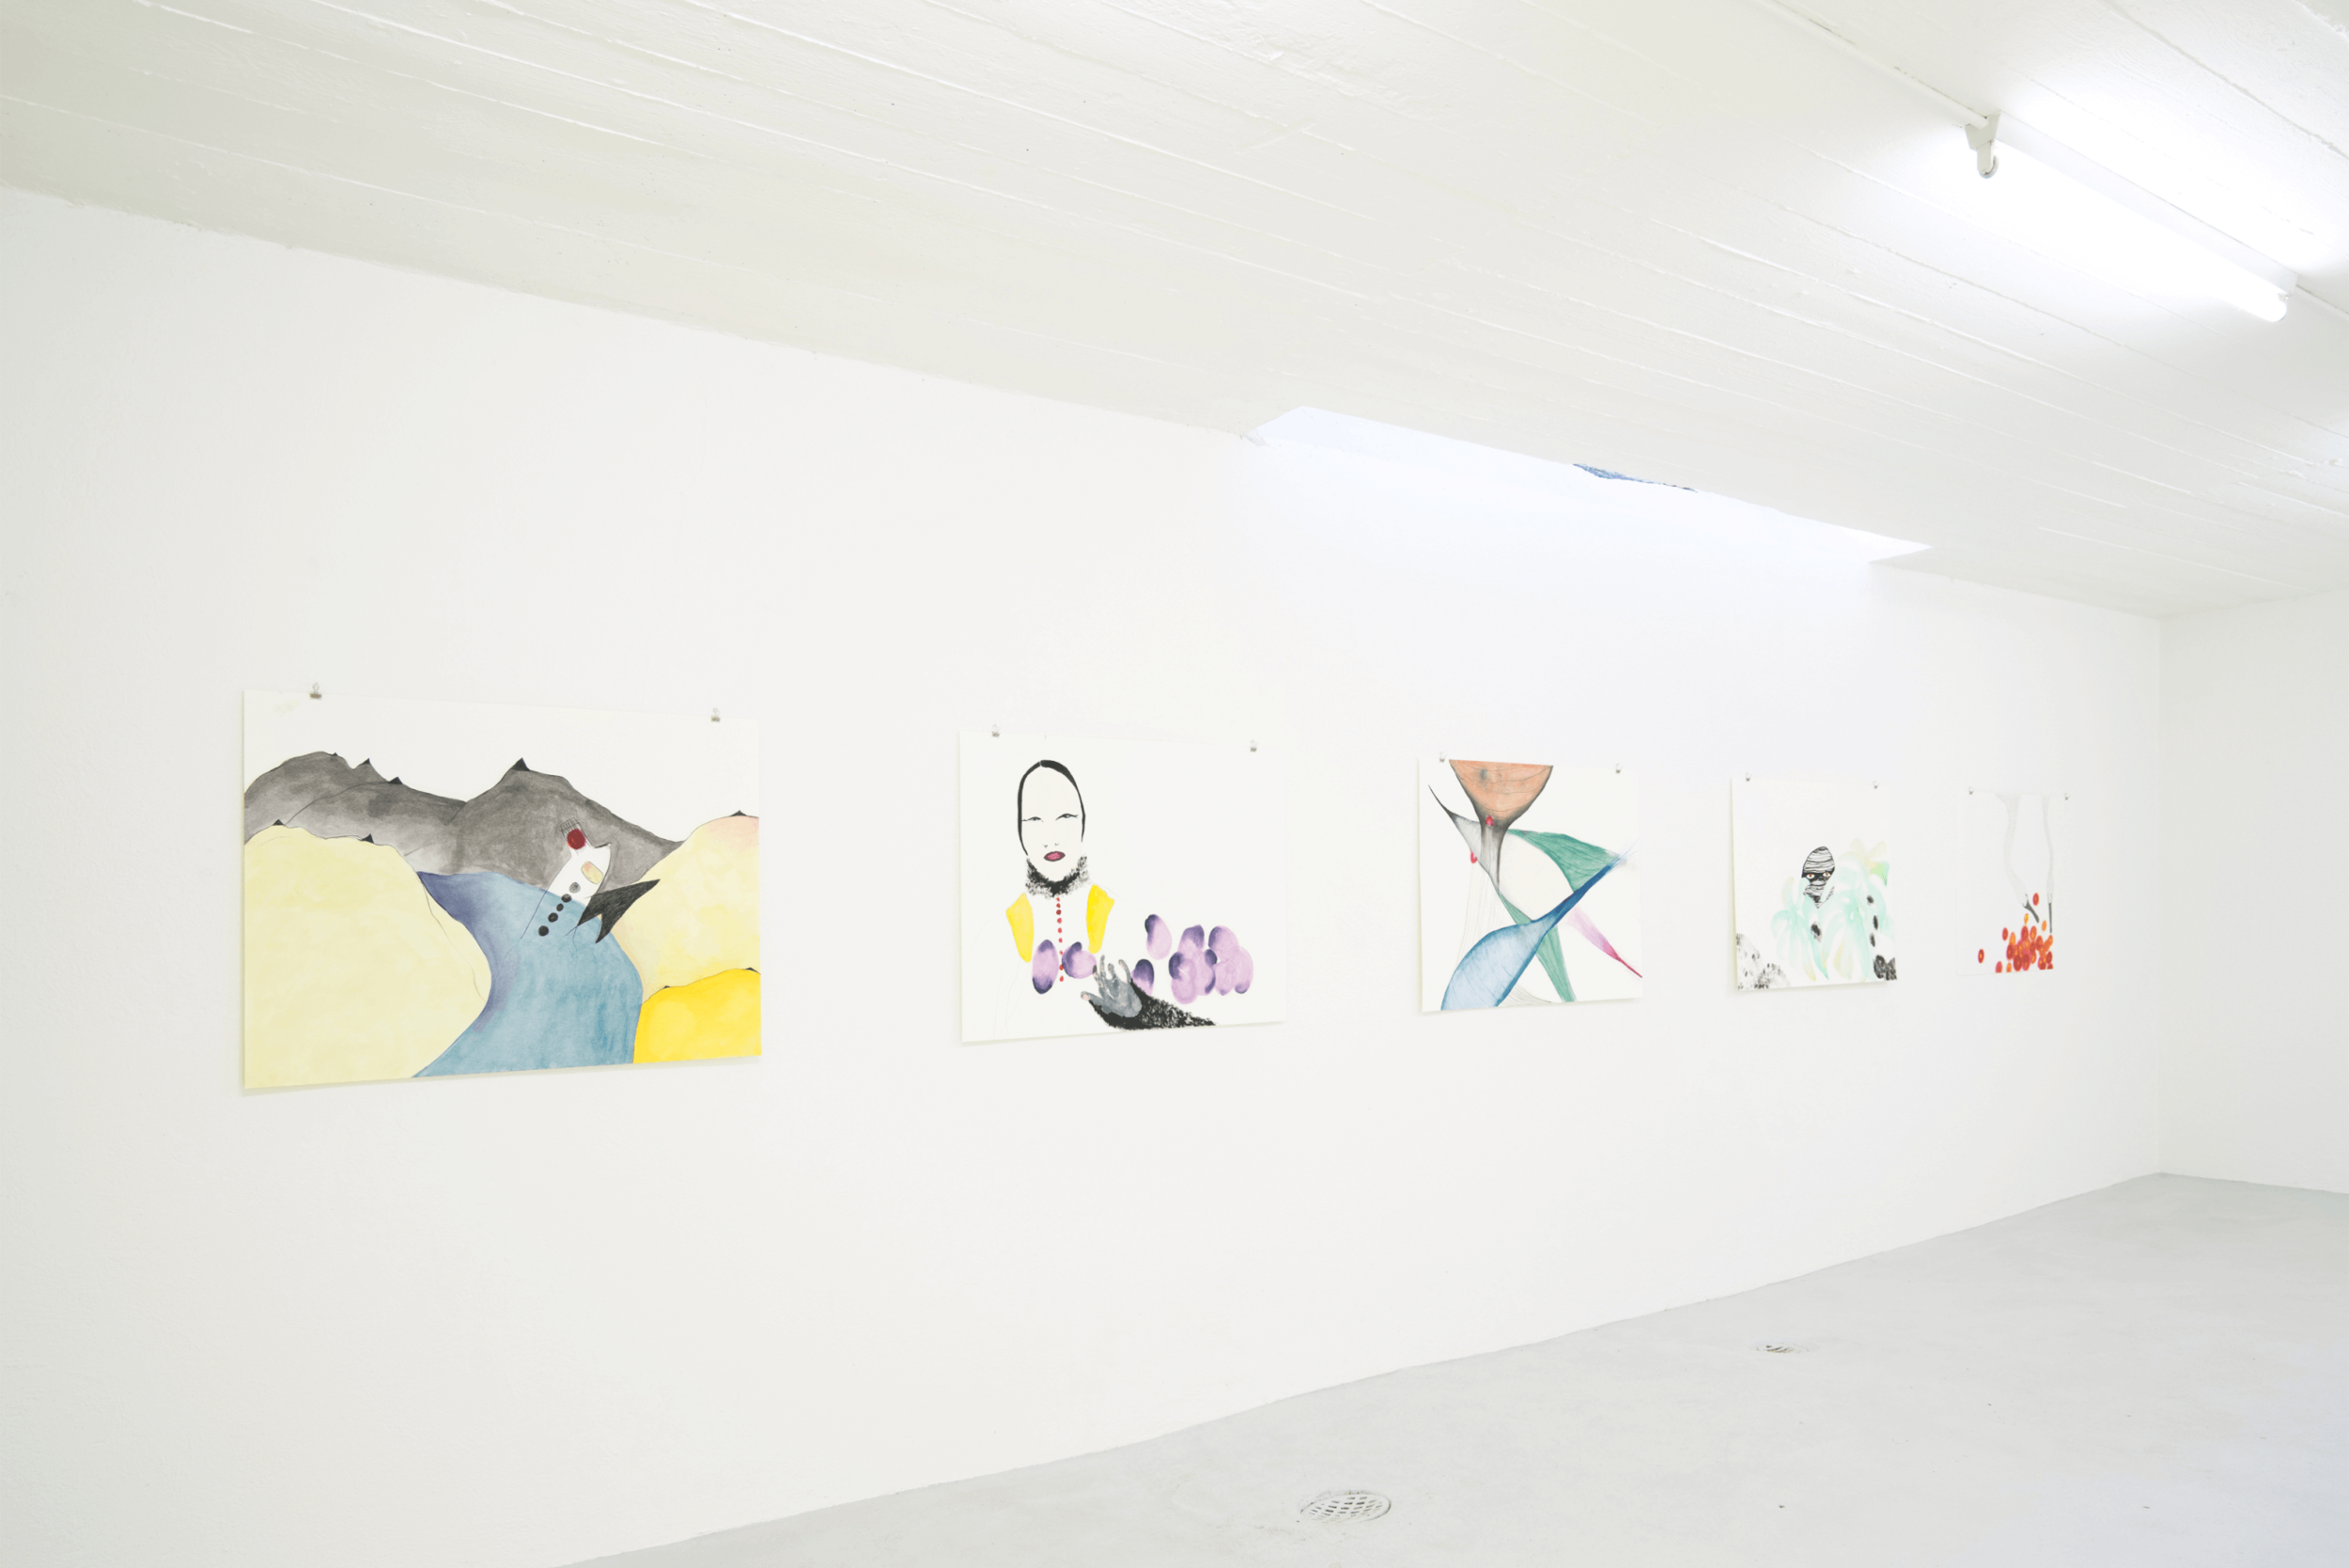 Ausstellungsansicht im LOKAL 14  v.l.n.r. « mysterious », « fukushima girl », « only these virgins », « hands up», « twin swans » 2016/2017je 70 x 100 cm